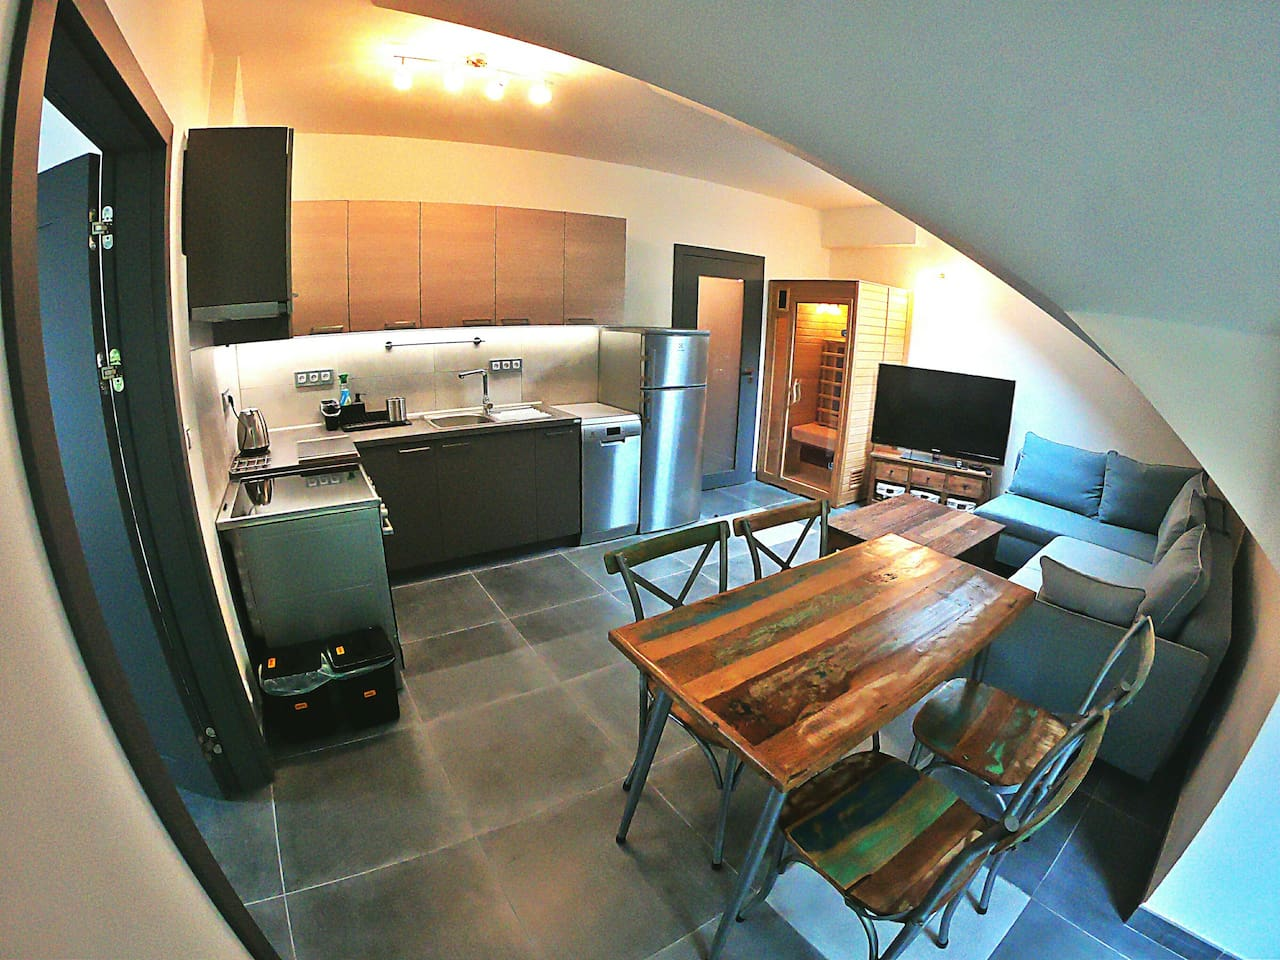 Fully equipped kitchen, dining area, and living space.